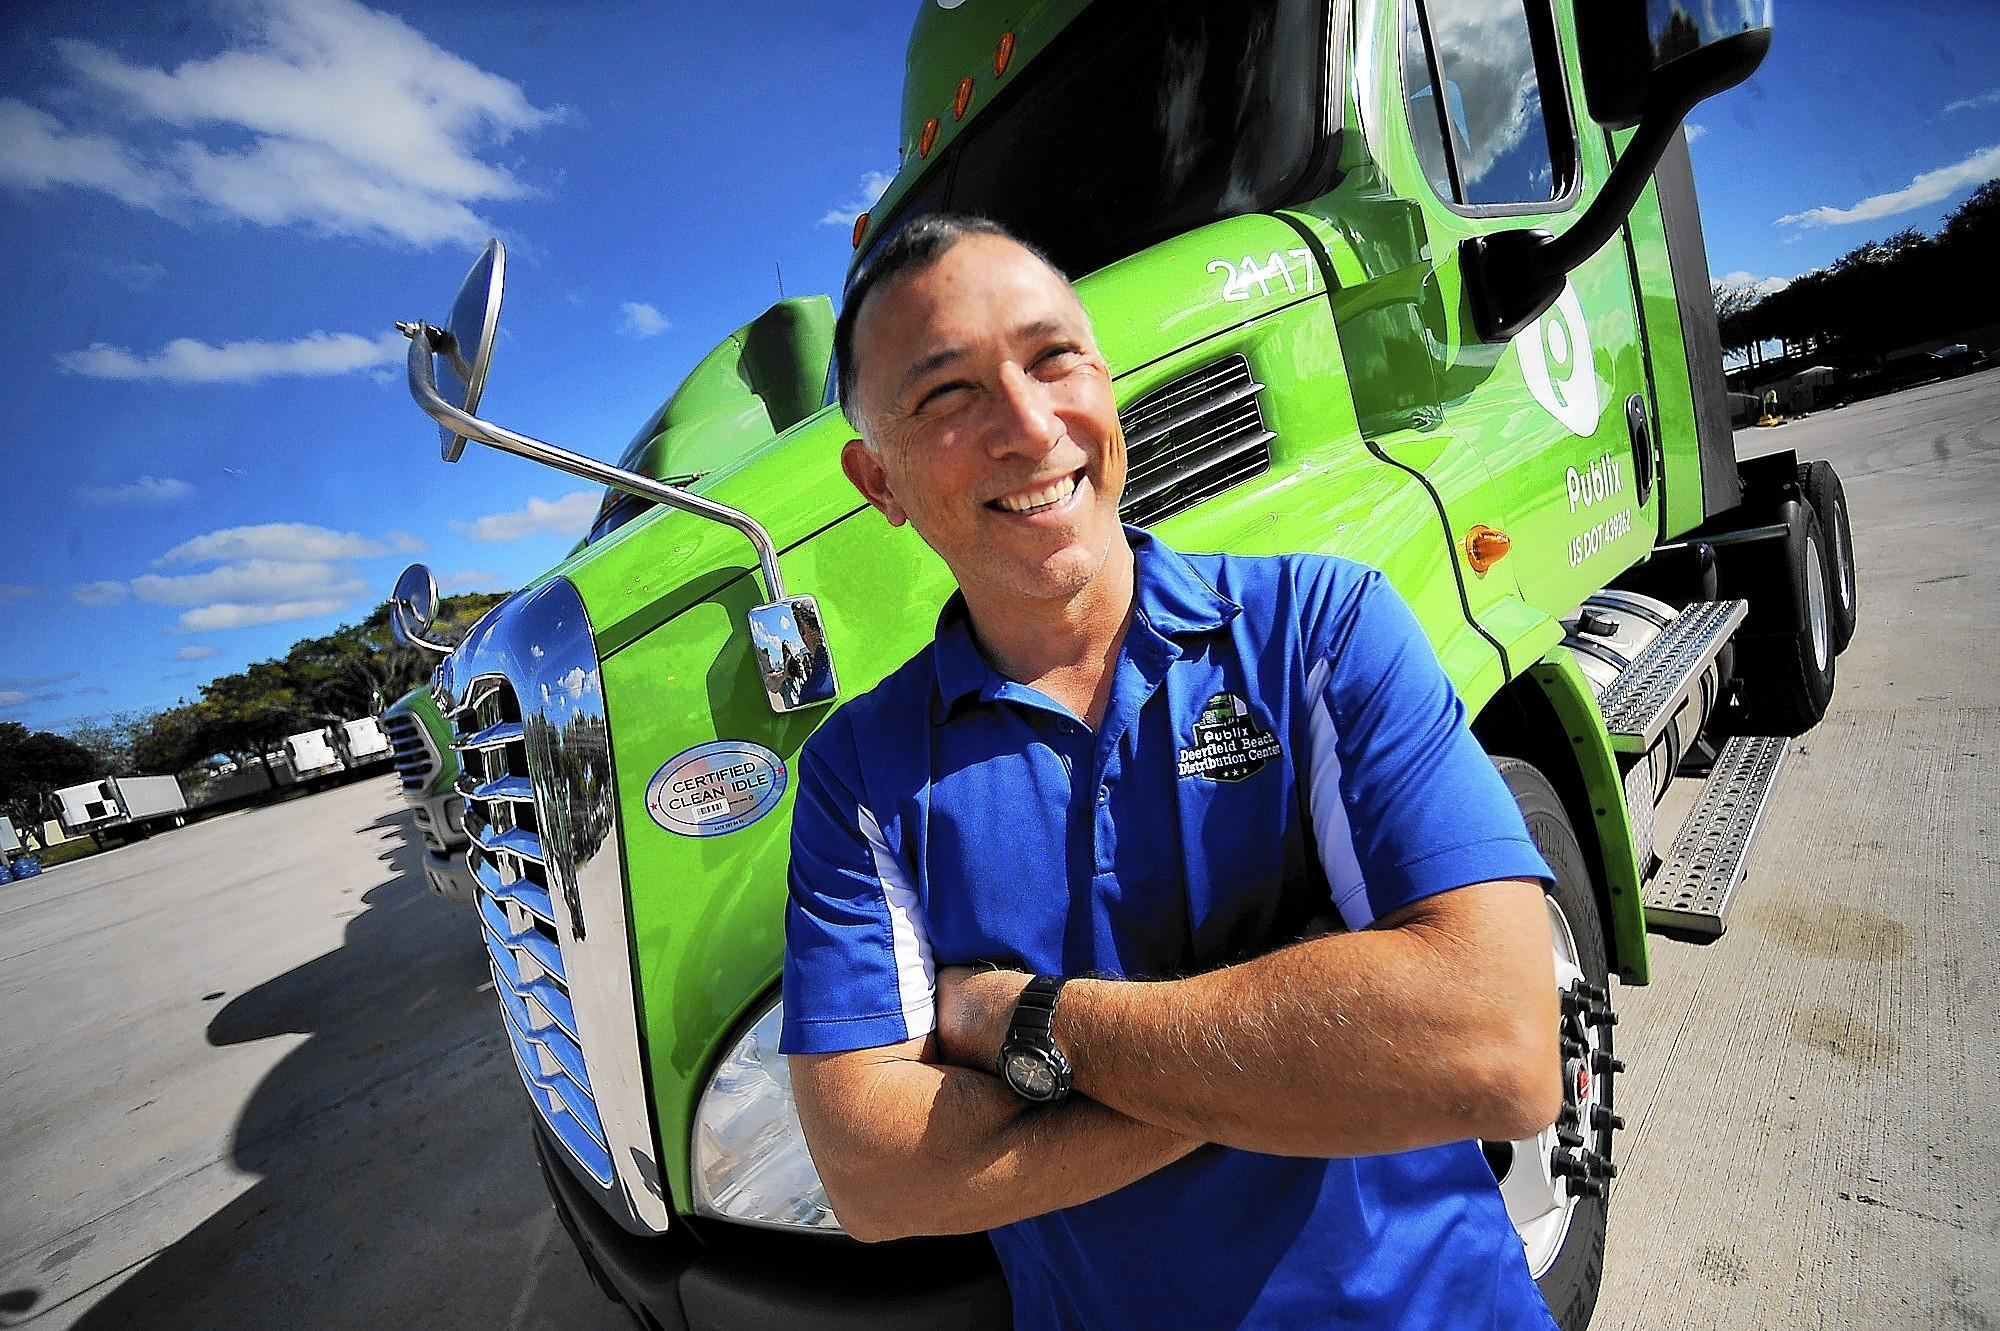 Publix trucker, Coconut Creek resident Rod Retana is known for being on time. Attesting to that are two South Florida residents whose lives he has saved, including one 22-year-old woman he pulled out of a Miramar canal four months ago. Now the 49-year-old Retana has a chance to be certified a hero